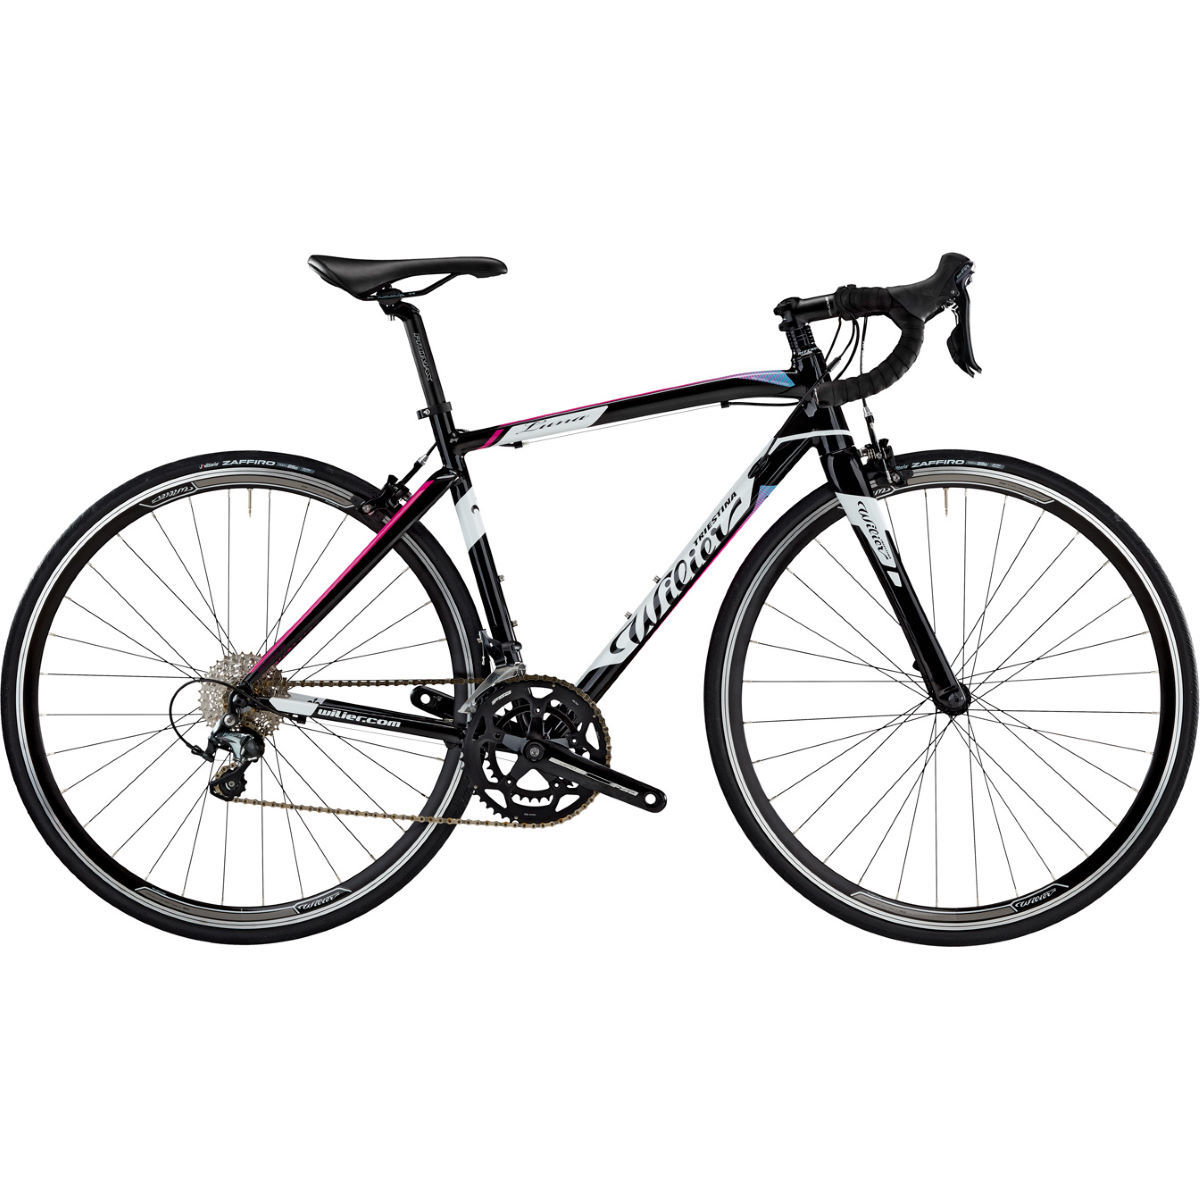 Wilier Luna (Tiagra 2018) Road Bike Black/White in Stock in Small at this price.